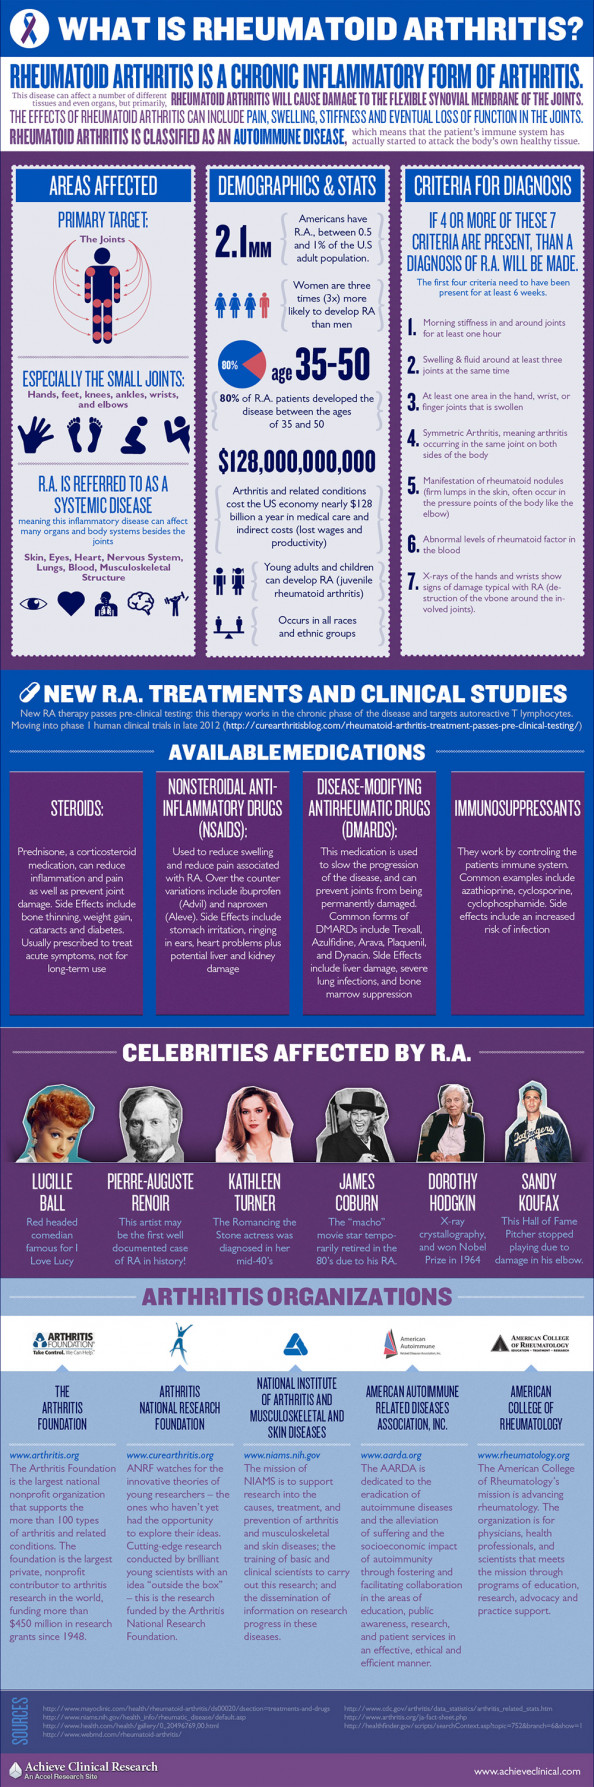 What Is Rheumatoid Arthritis? Infographic